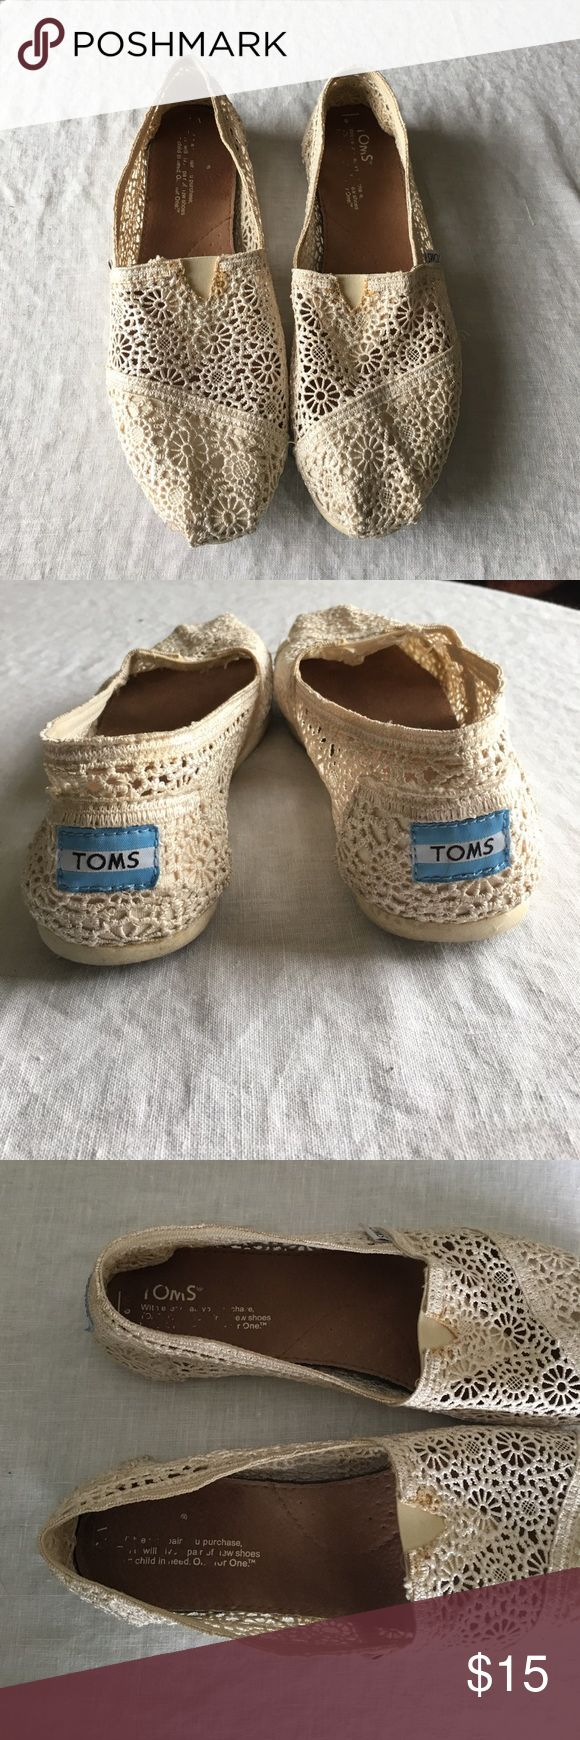 Cream crochet toms Worn less than 5 times! Great condition besides stain on both shoes where the elastic is (pictured) TOMS Shoes Flats & Loafers